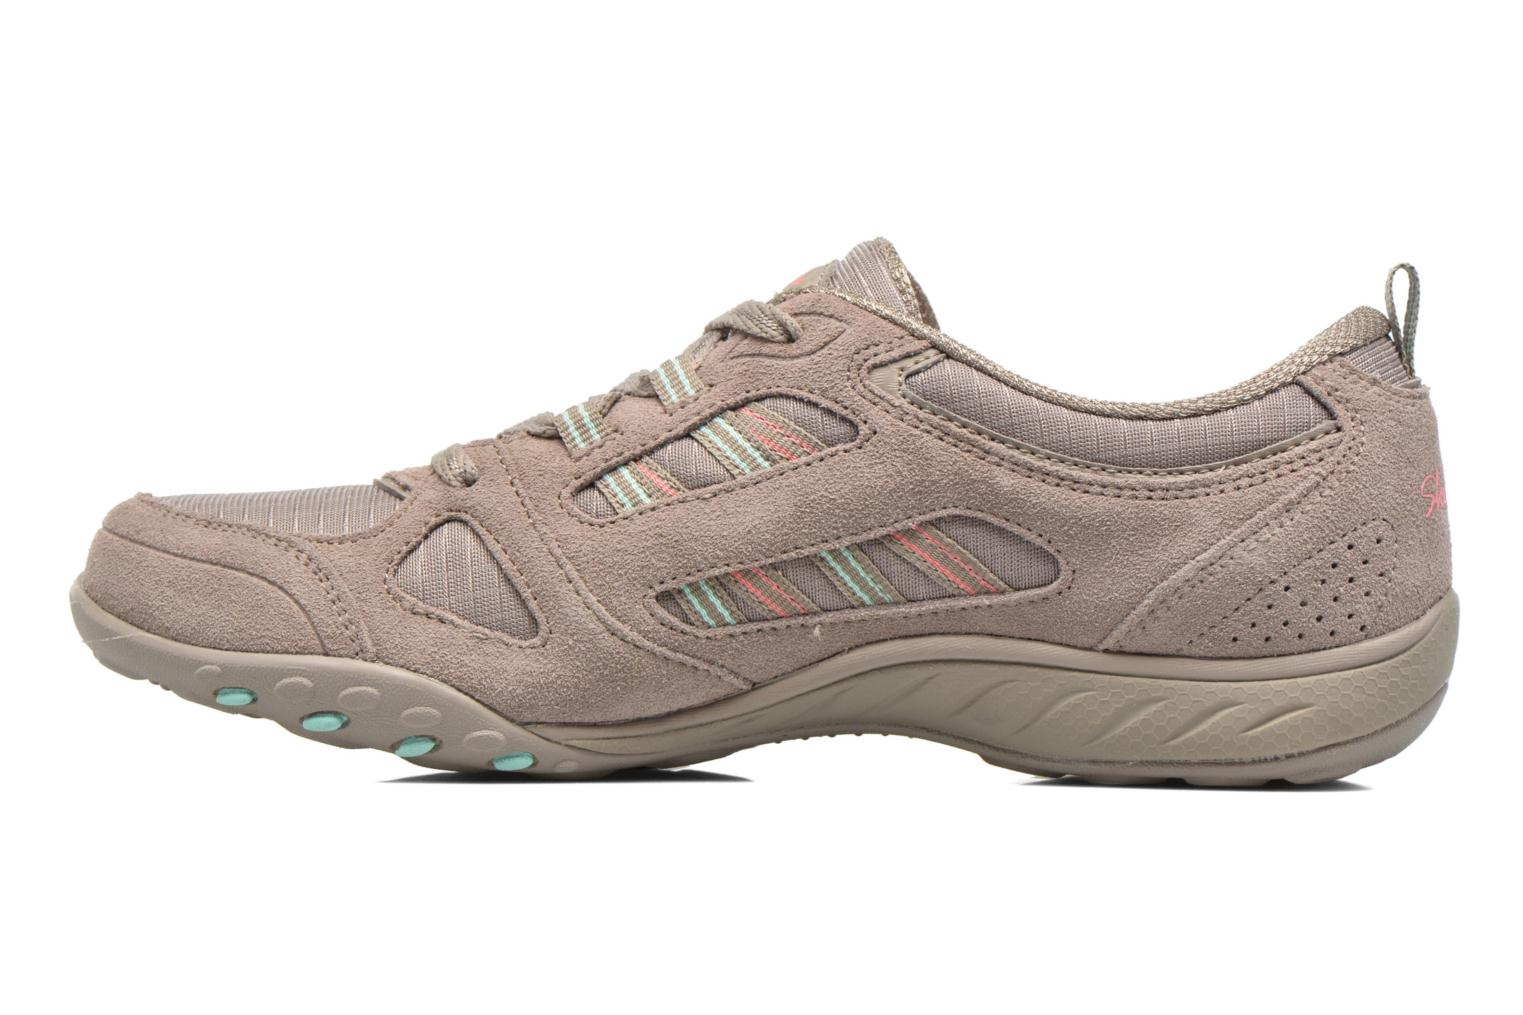 Deportivas Skechers Breathe-Easy - Good Gris vista de frente